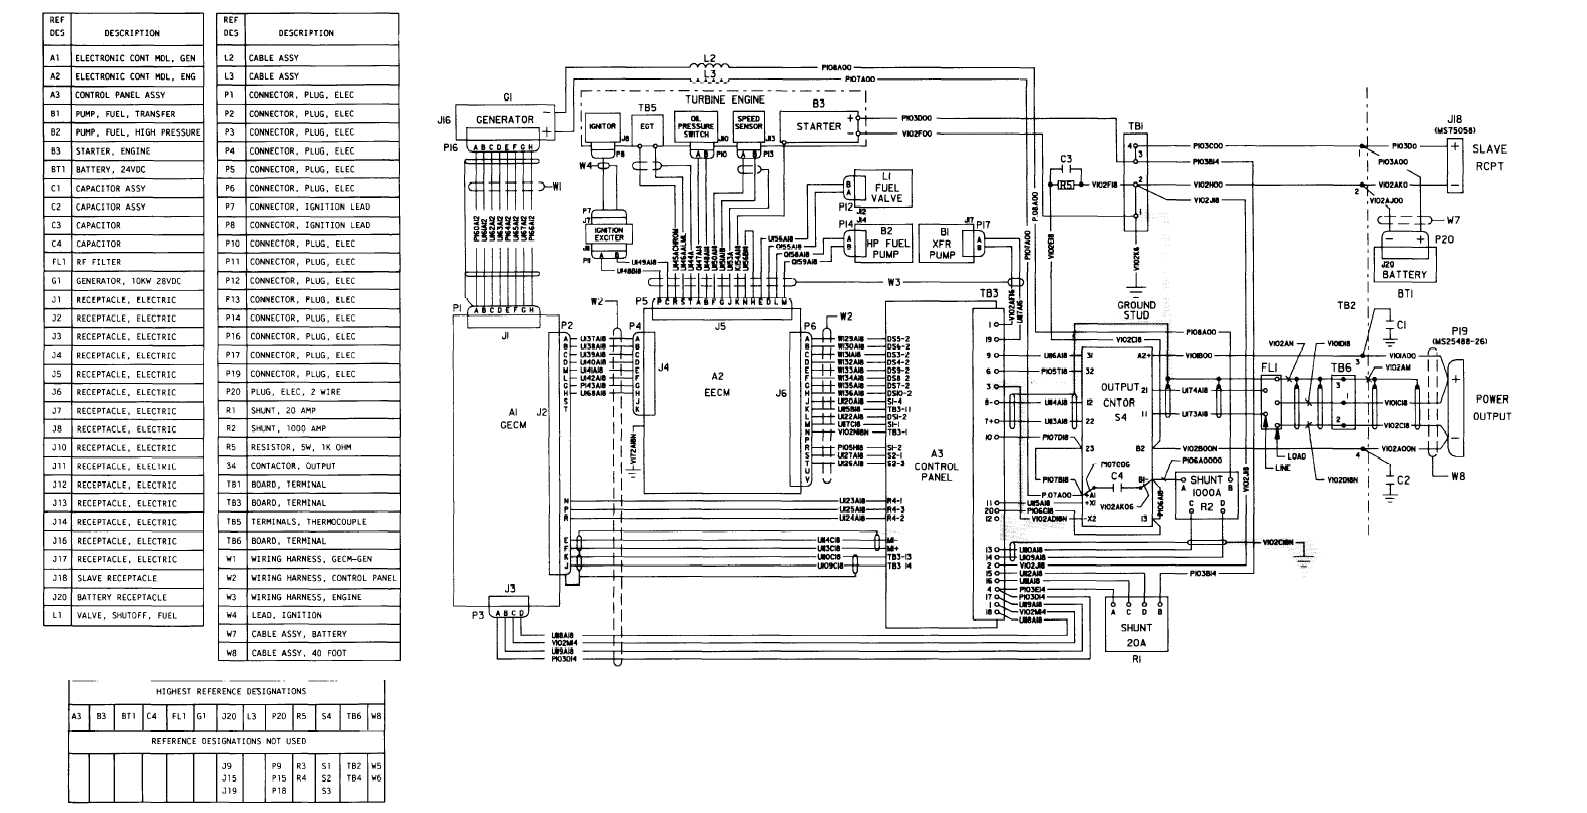 TM 5 6115 612 12_300_1 fo 3 generator set wiring diagram generator wiring diagrams at gsmx.co